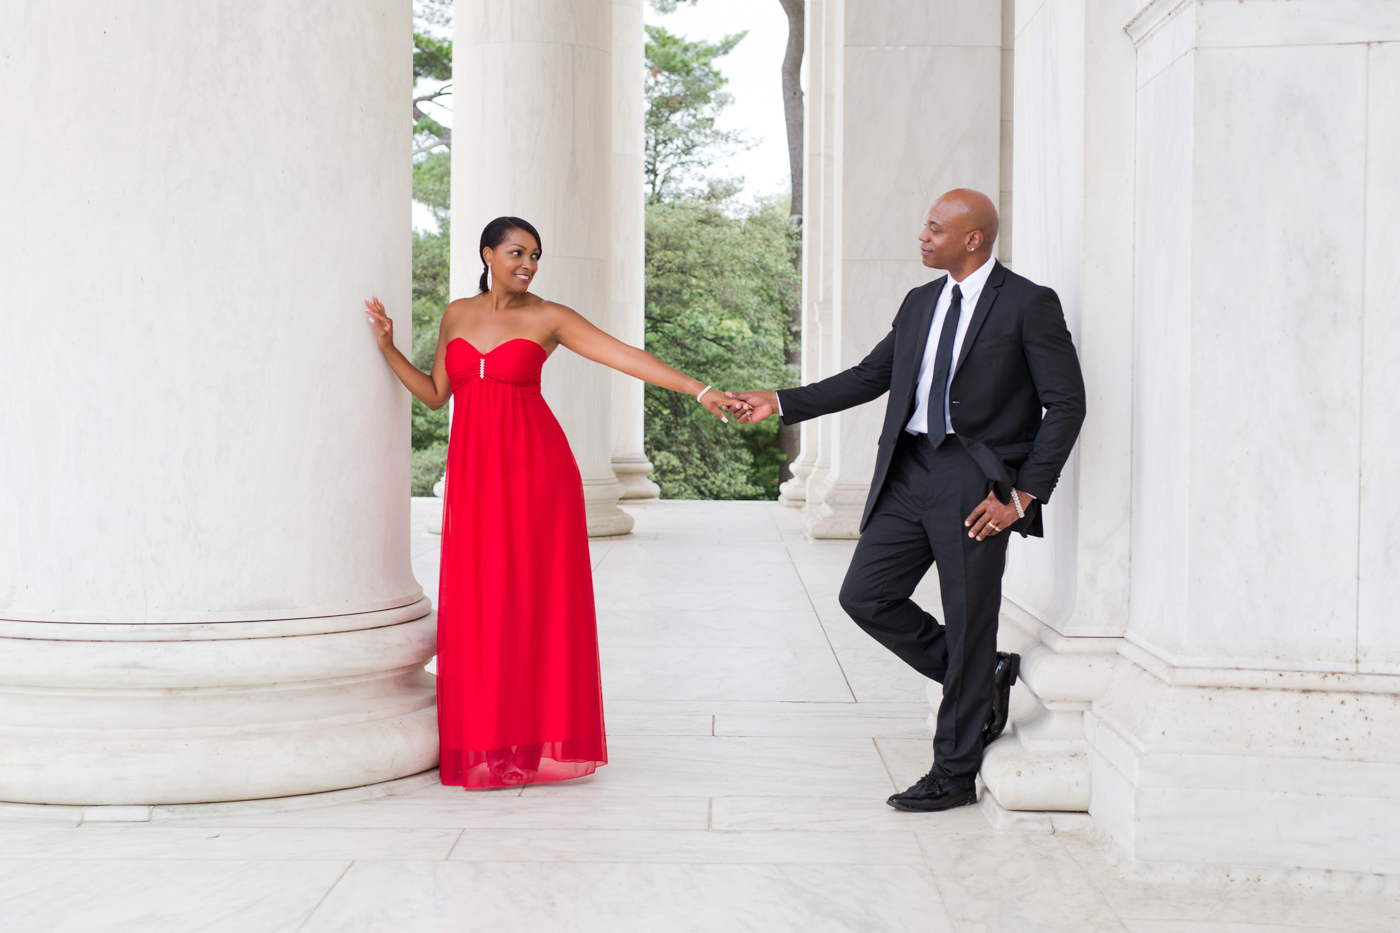 wedding-anniversary-photo-shoot-in-washington-dc-ksenia-pro-photography-29